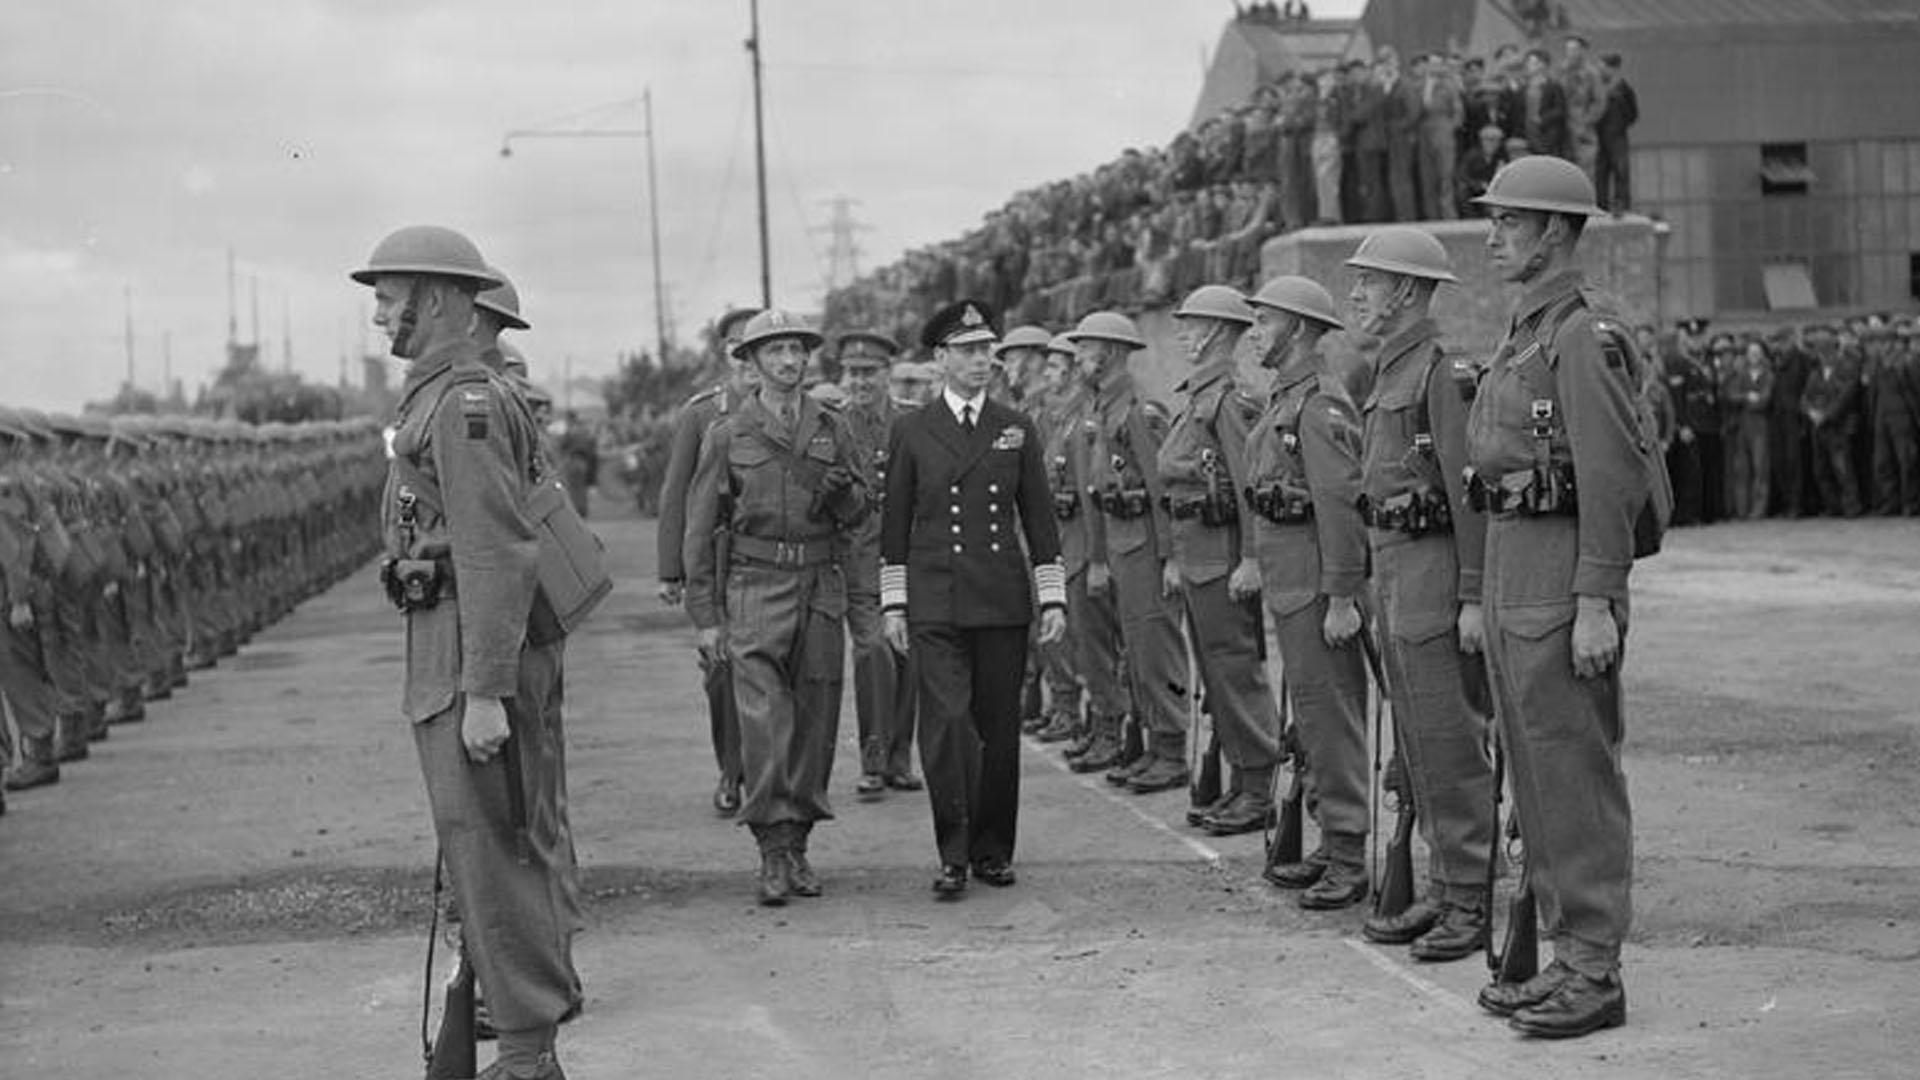 King George VI inspects the guard of honour at HMS Phoebe